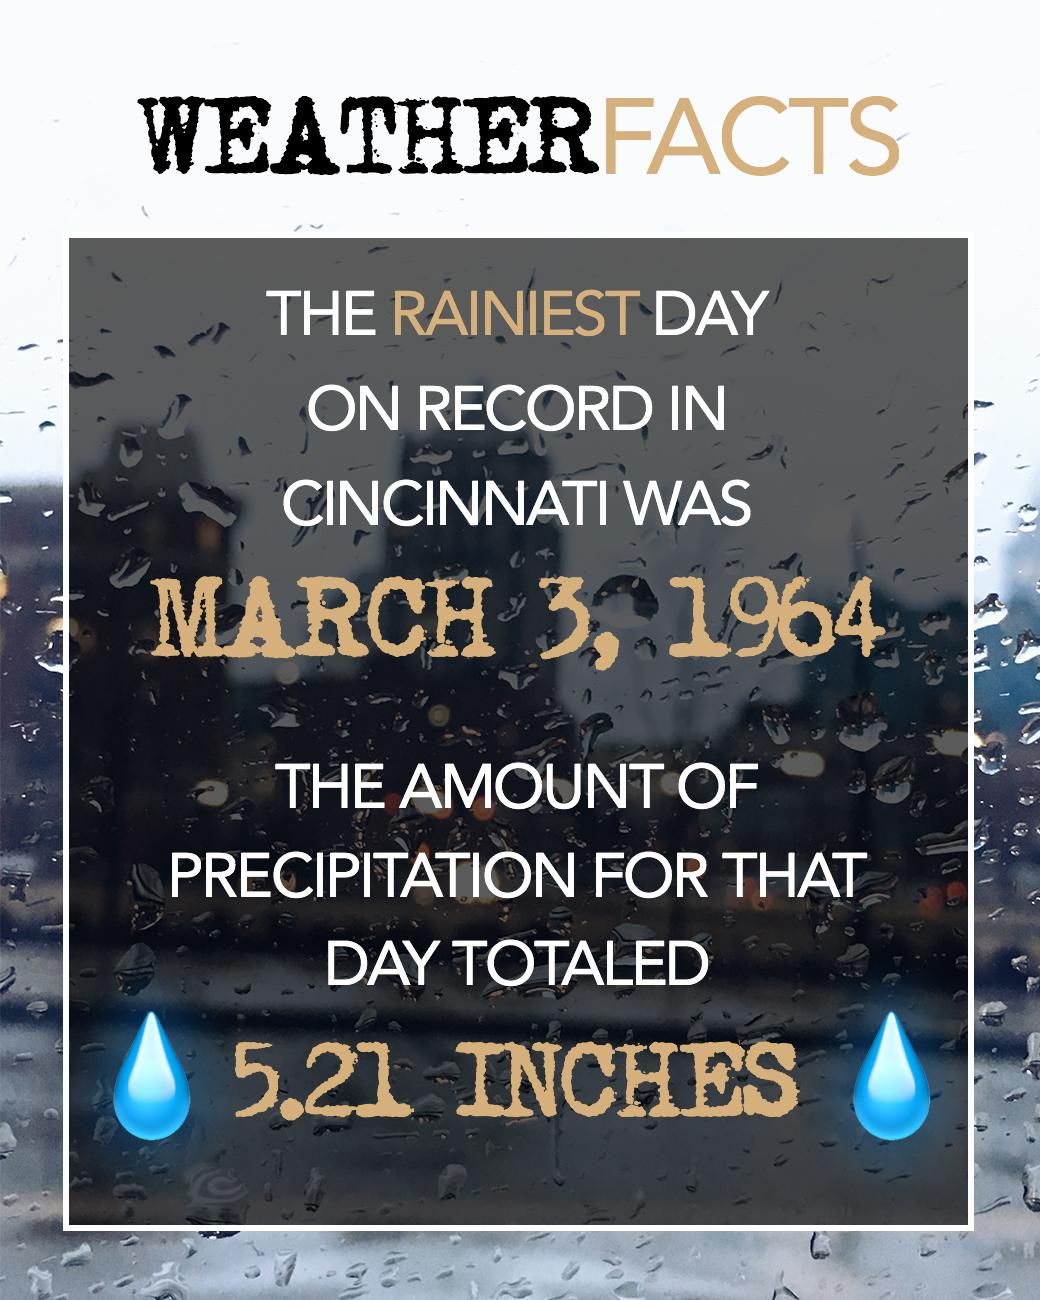 The rainiest day on record in Cincinnati was March 3, 1964. The amount of precipitation for that day totaled 5.21 inches. / Image: Justin Kohl // Published: 2.26.17